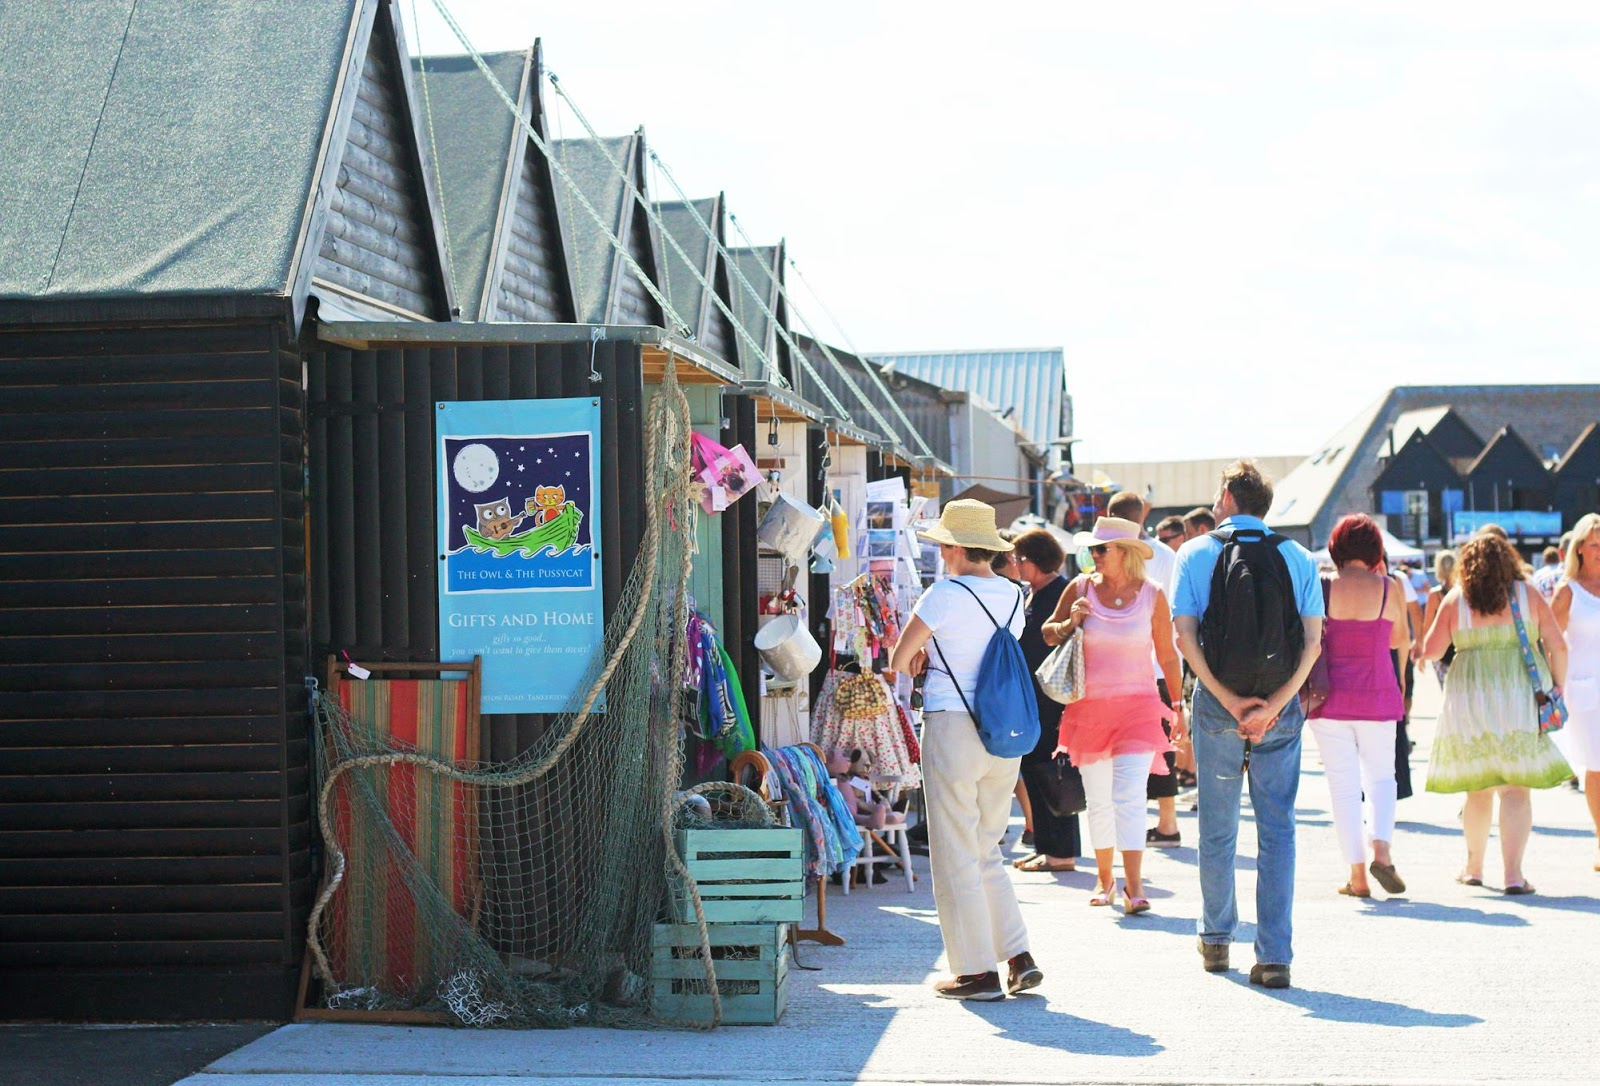 whitstable, whitstable uk, whitstable beach, visit whitstable, whitstable beach hut shops